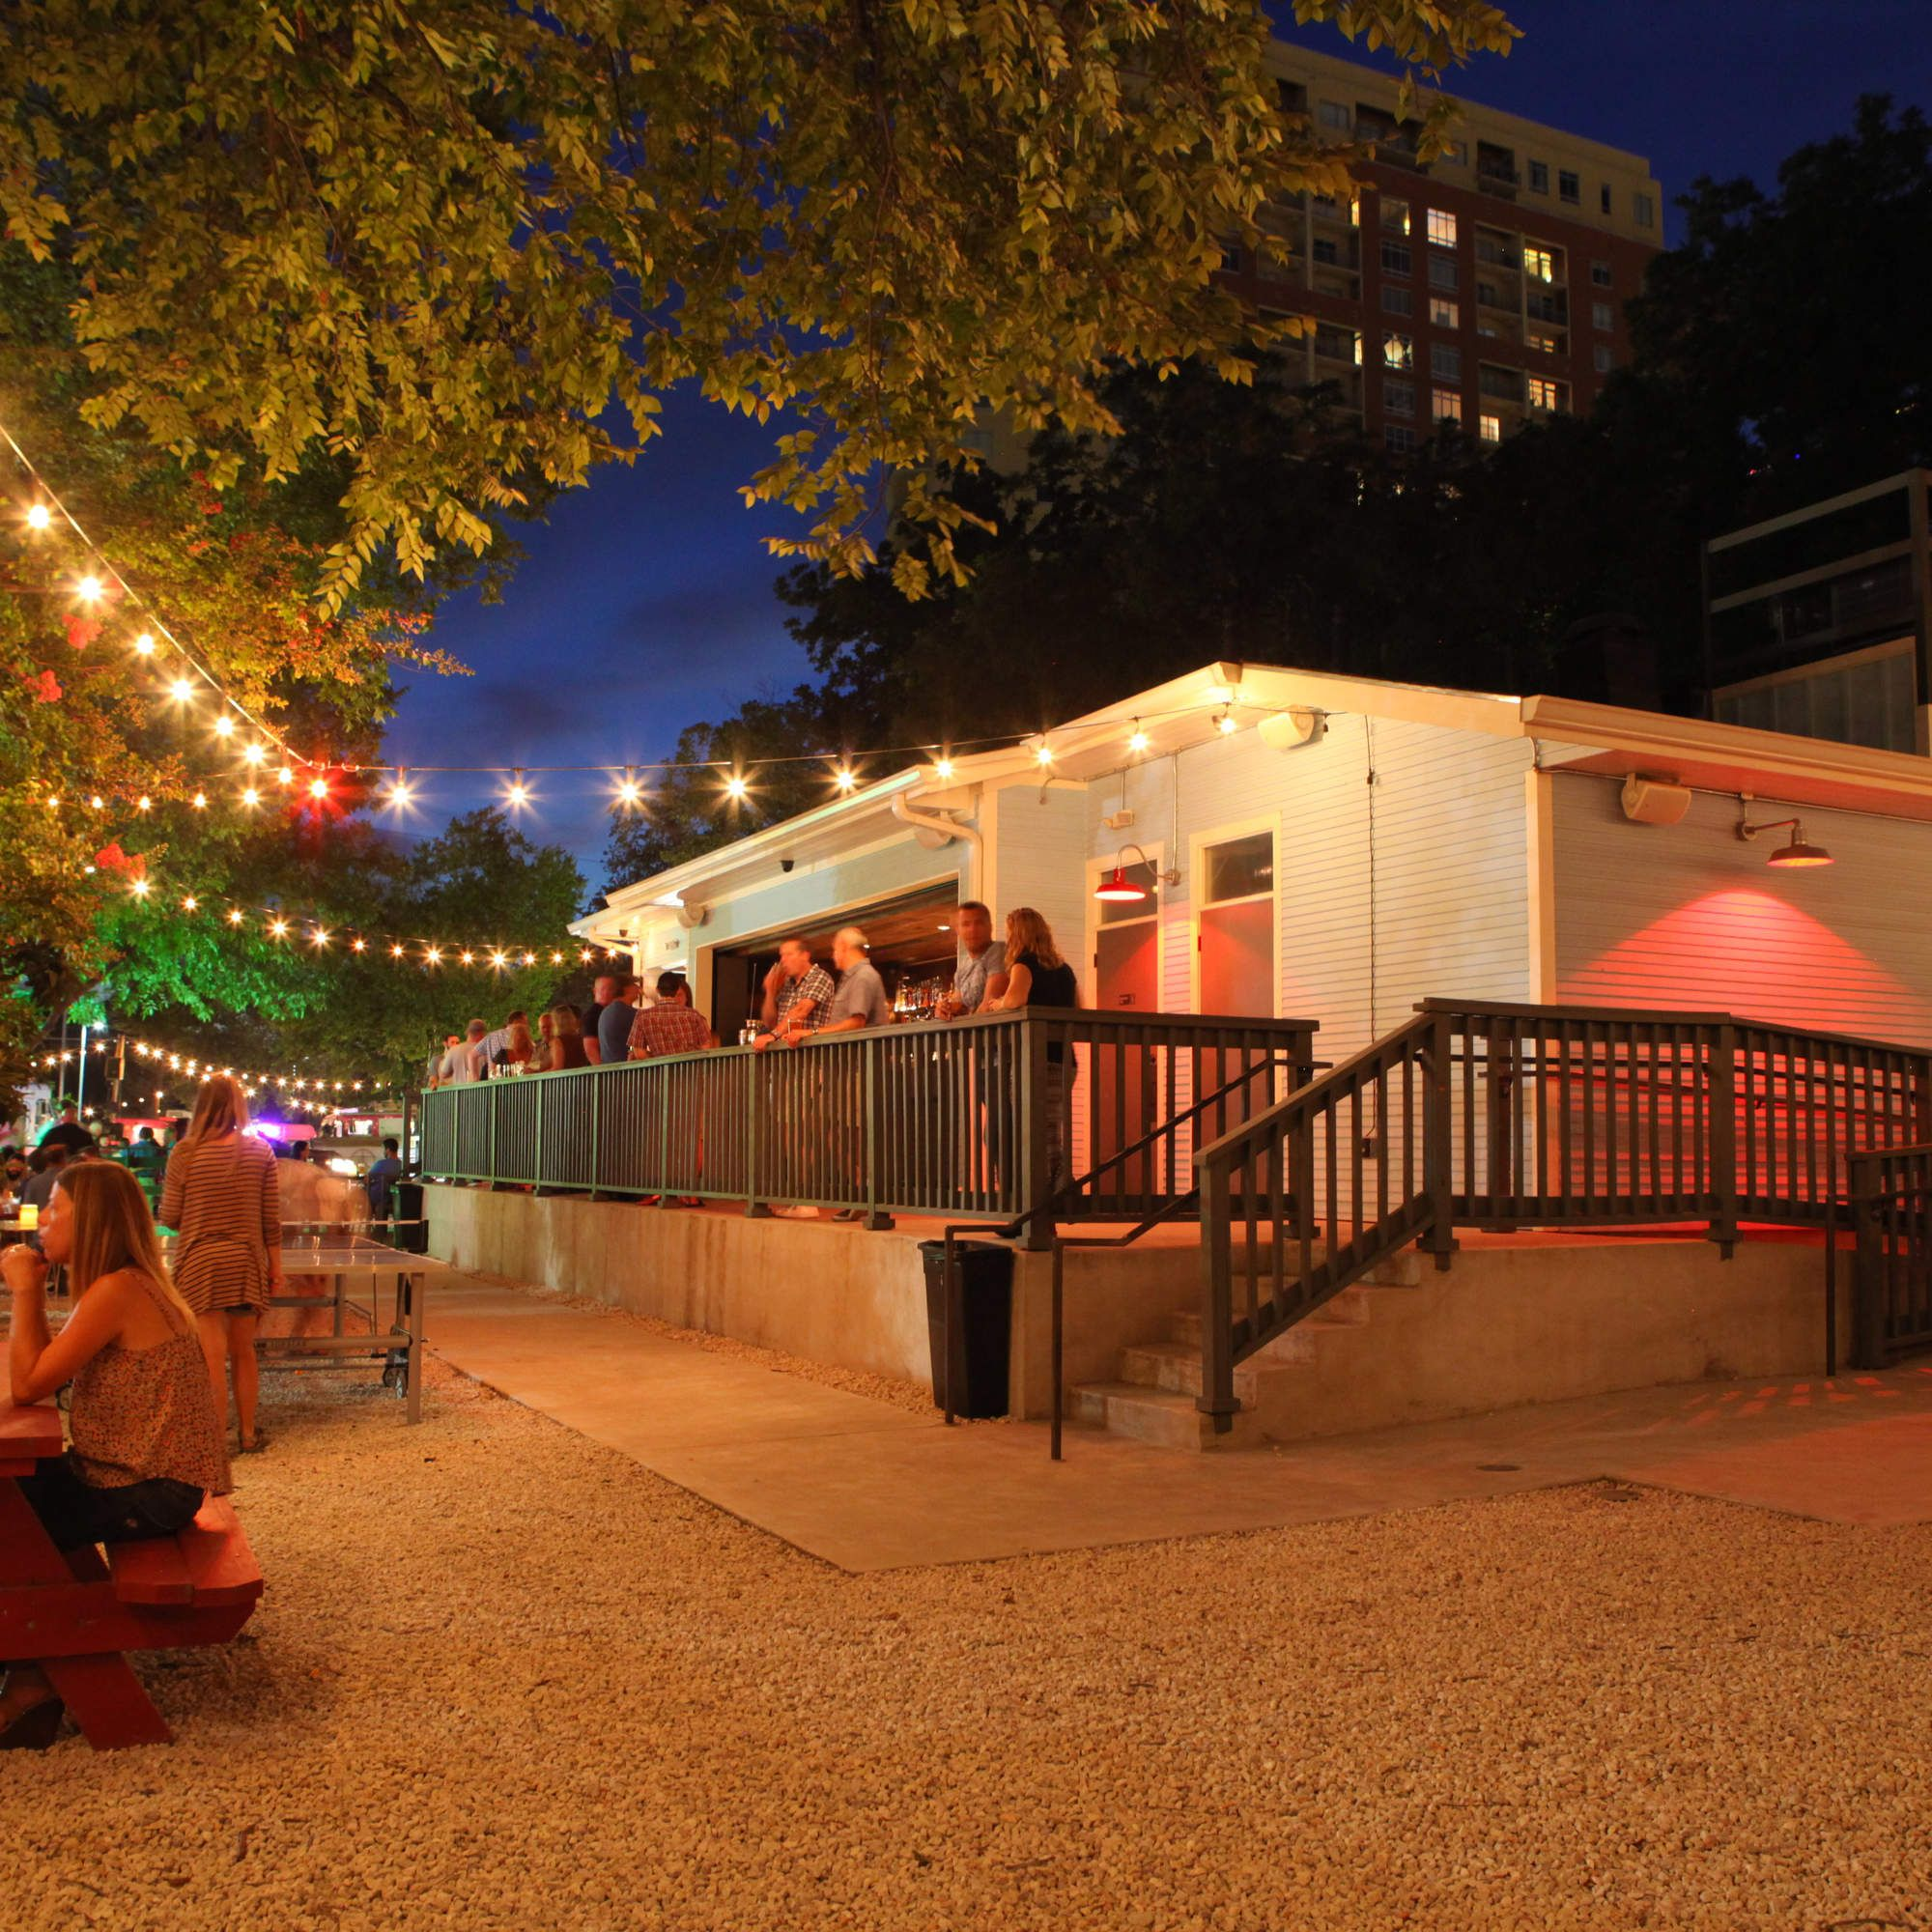 26 actually great date ideas in austin | date ideas, dates and best